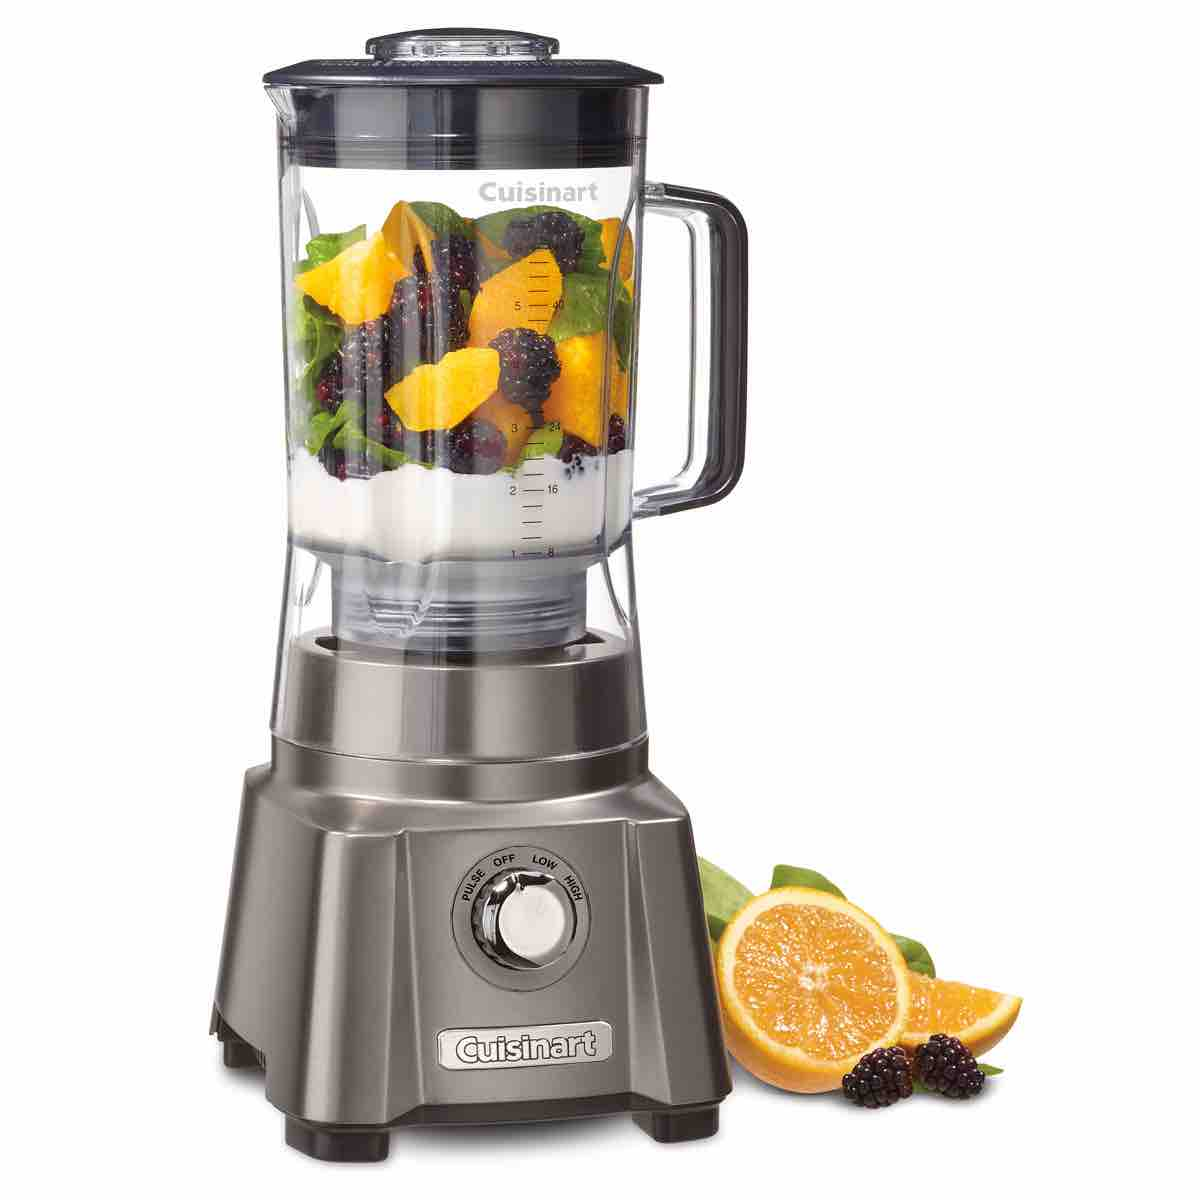 Cuisinart Velocity 600 Watt Power Blender